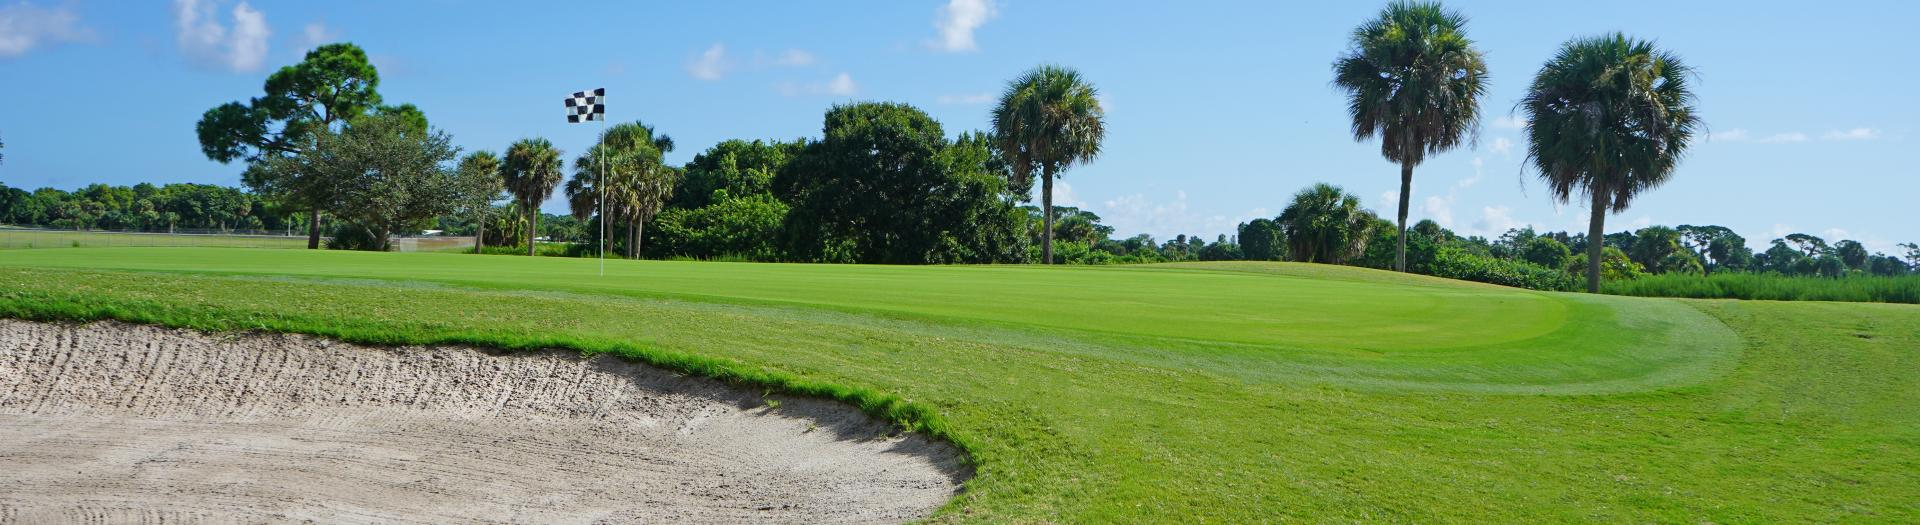 Golf greens of Sailfish Sands Golf Course with bunker